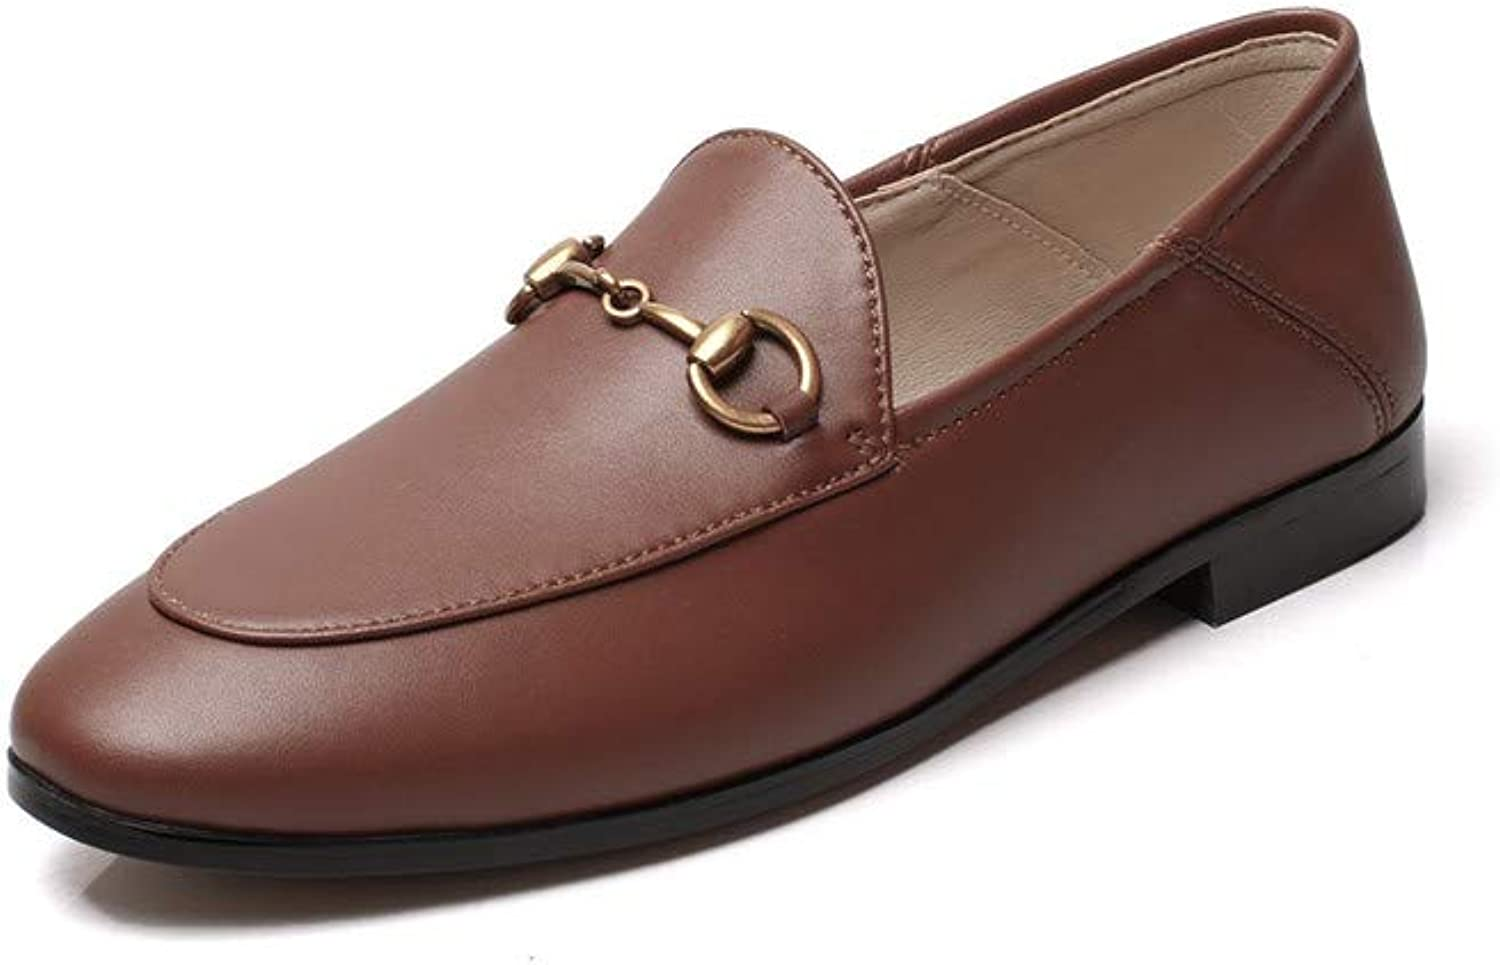 Pophight Womens Leather Oxford Backless Slipper Slip-ons Loafer shoes Brown